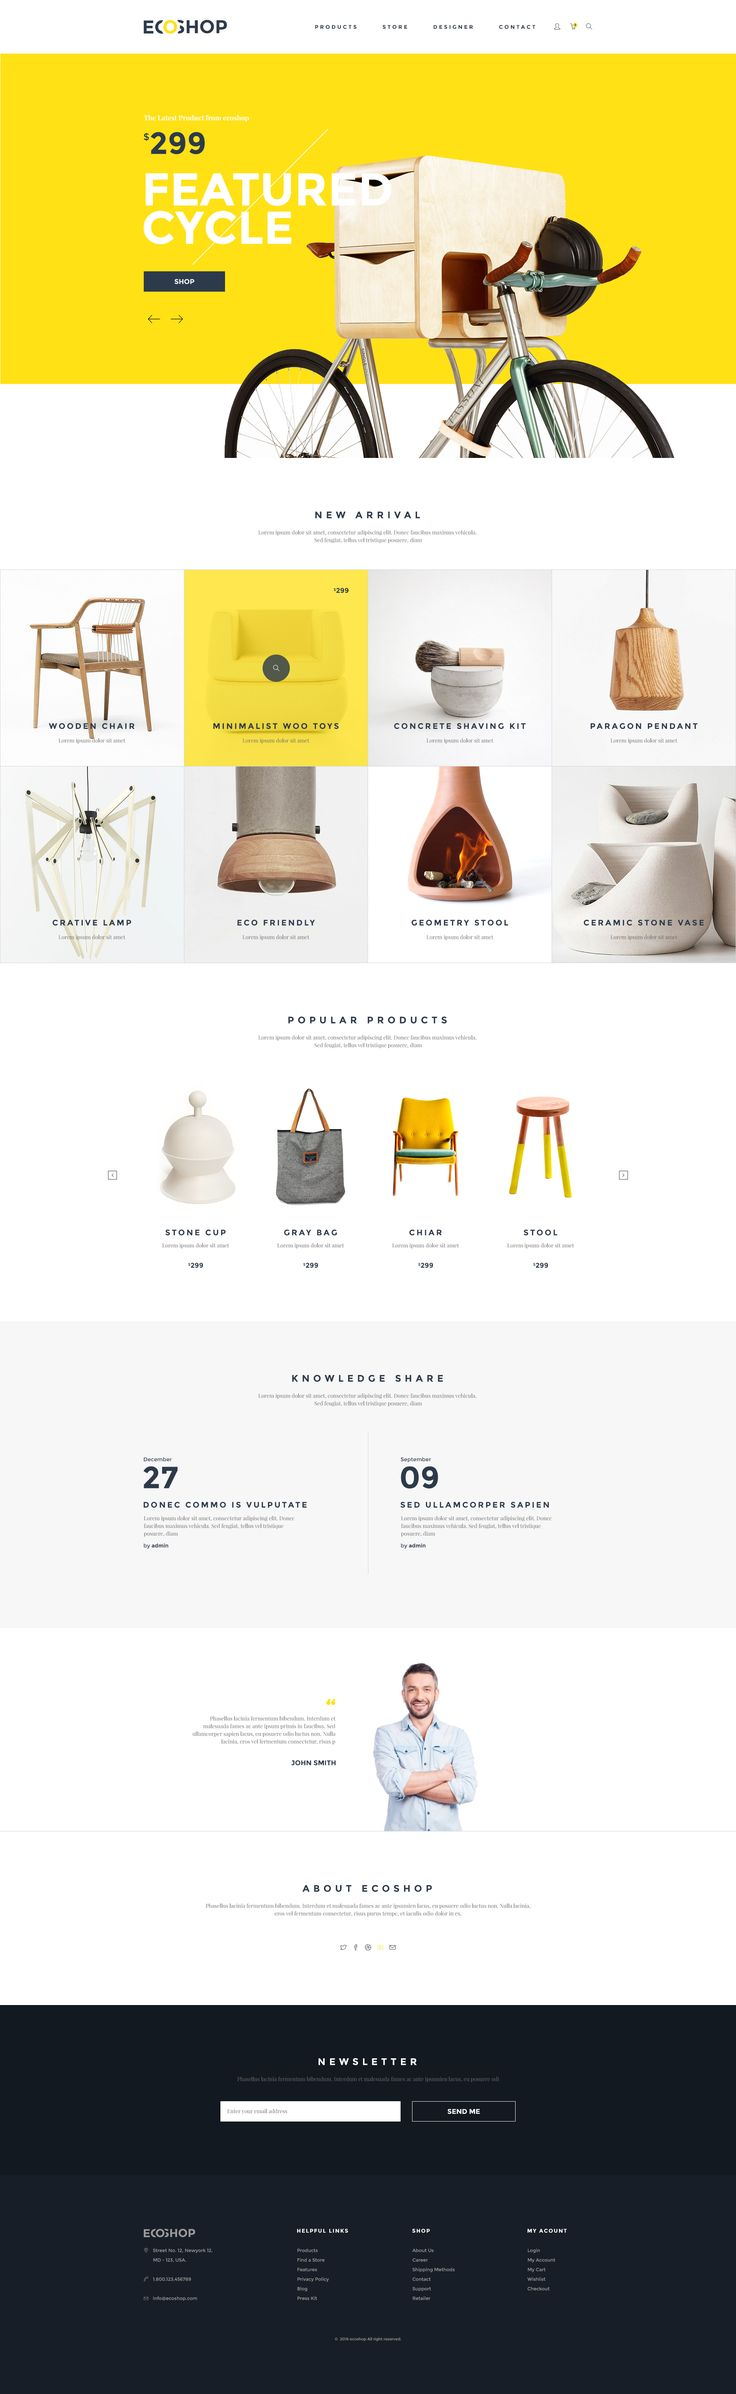 ECOSHOP is high quality eCommerce PSD Templates which designed for commercial use like clothes, cosmetics, furniture, gadgets, shoes, bags, home decore etc. A ready psd template to make a various online shop. Templates consists of 23 layer psd file. All layers are well organized and you can easily change its color, shapes etc.